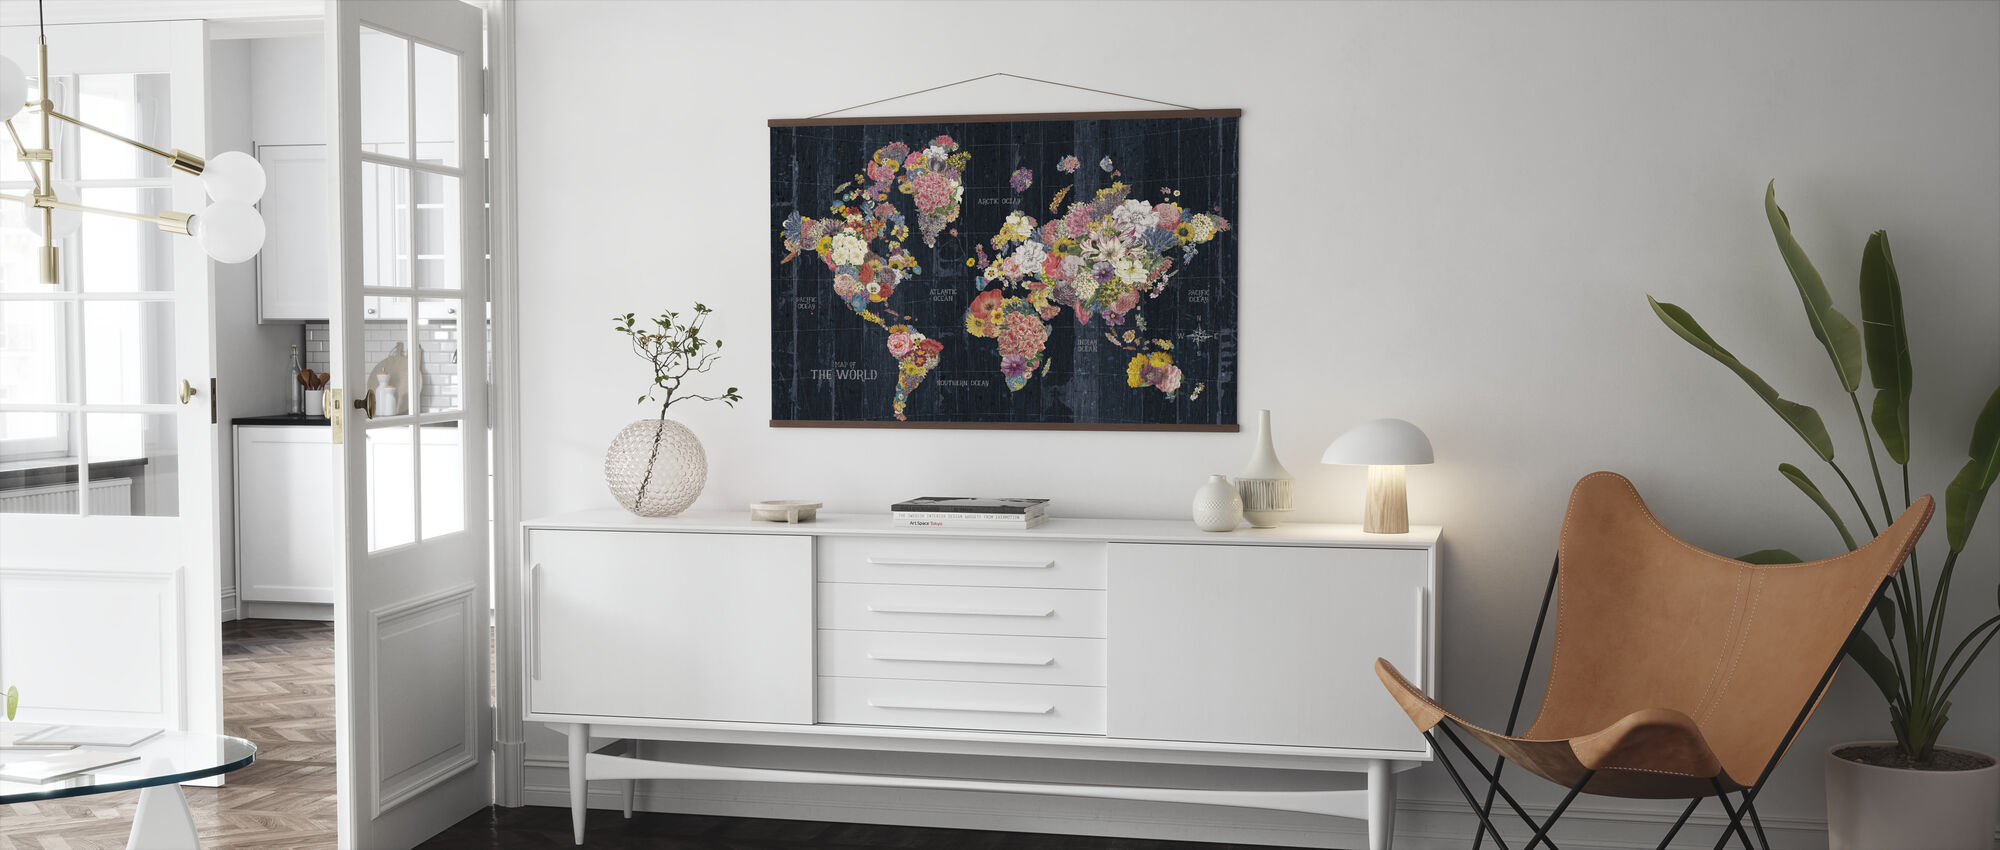 Botanical Floral Map Words - Poster - Living Room